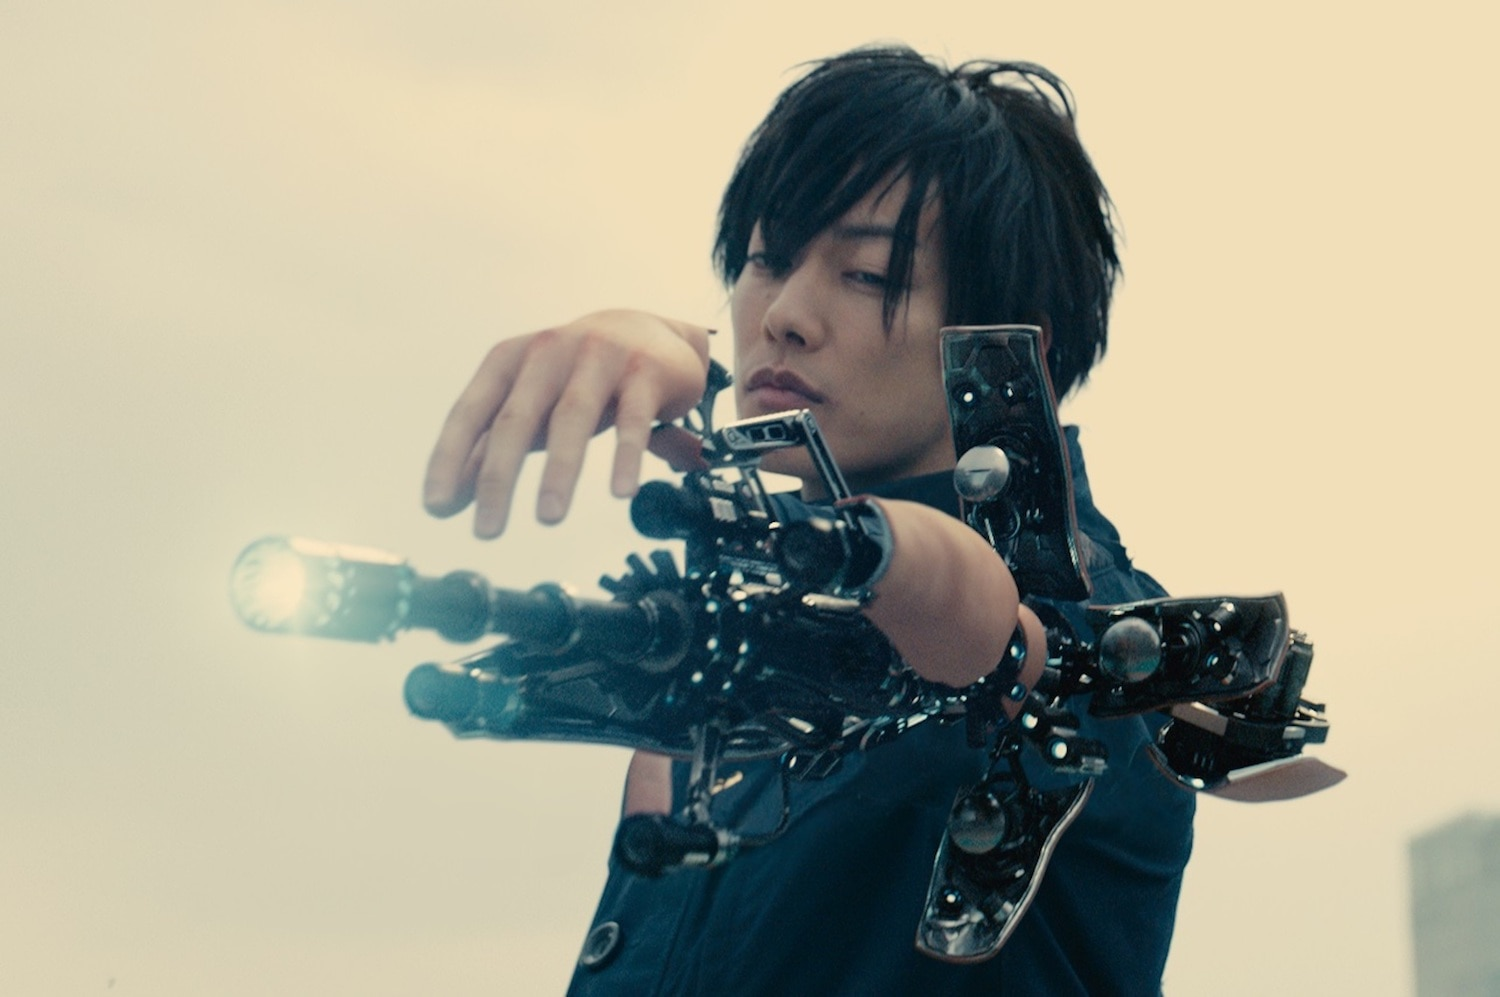 fantasia2018 Inuyashiki 01 - Fantasia 2018: First Wave of Films Announced Including Bleach, Nightmare Cinema, and More